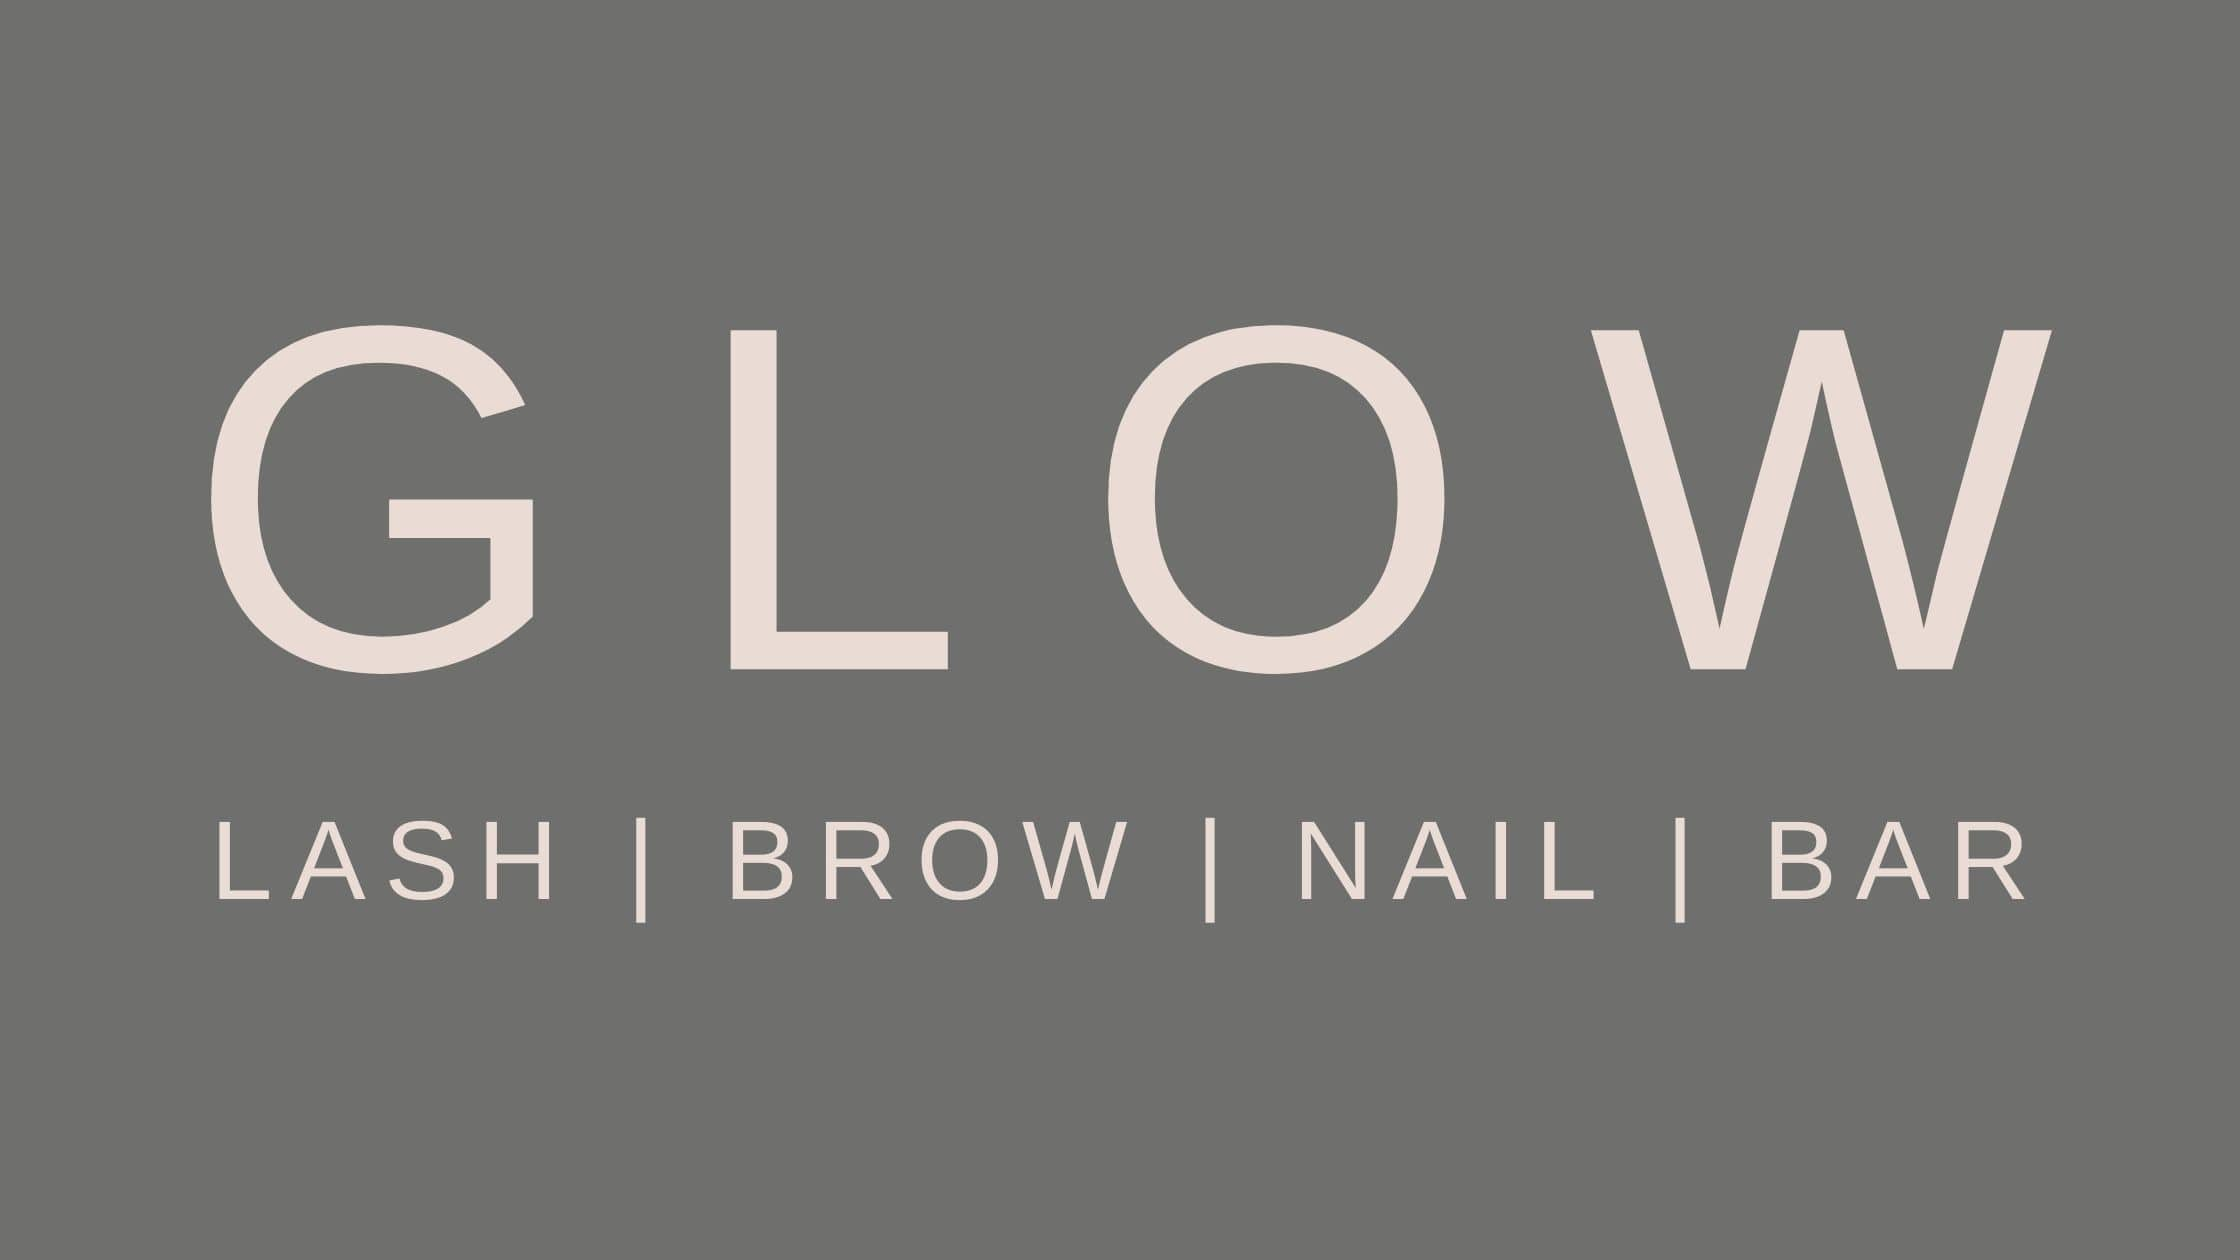 Glow Lash Brow Bar